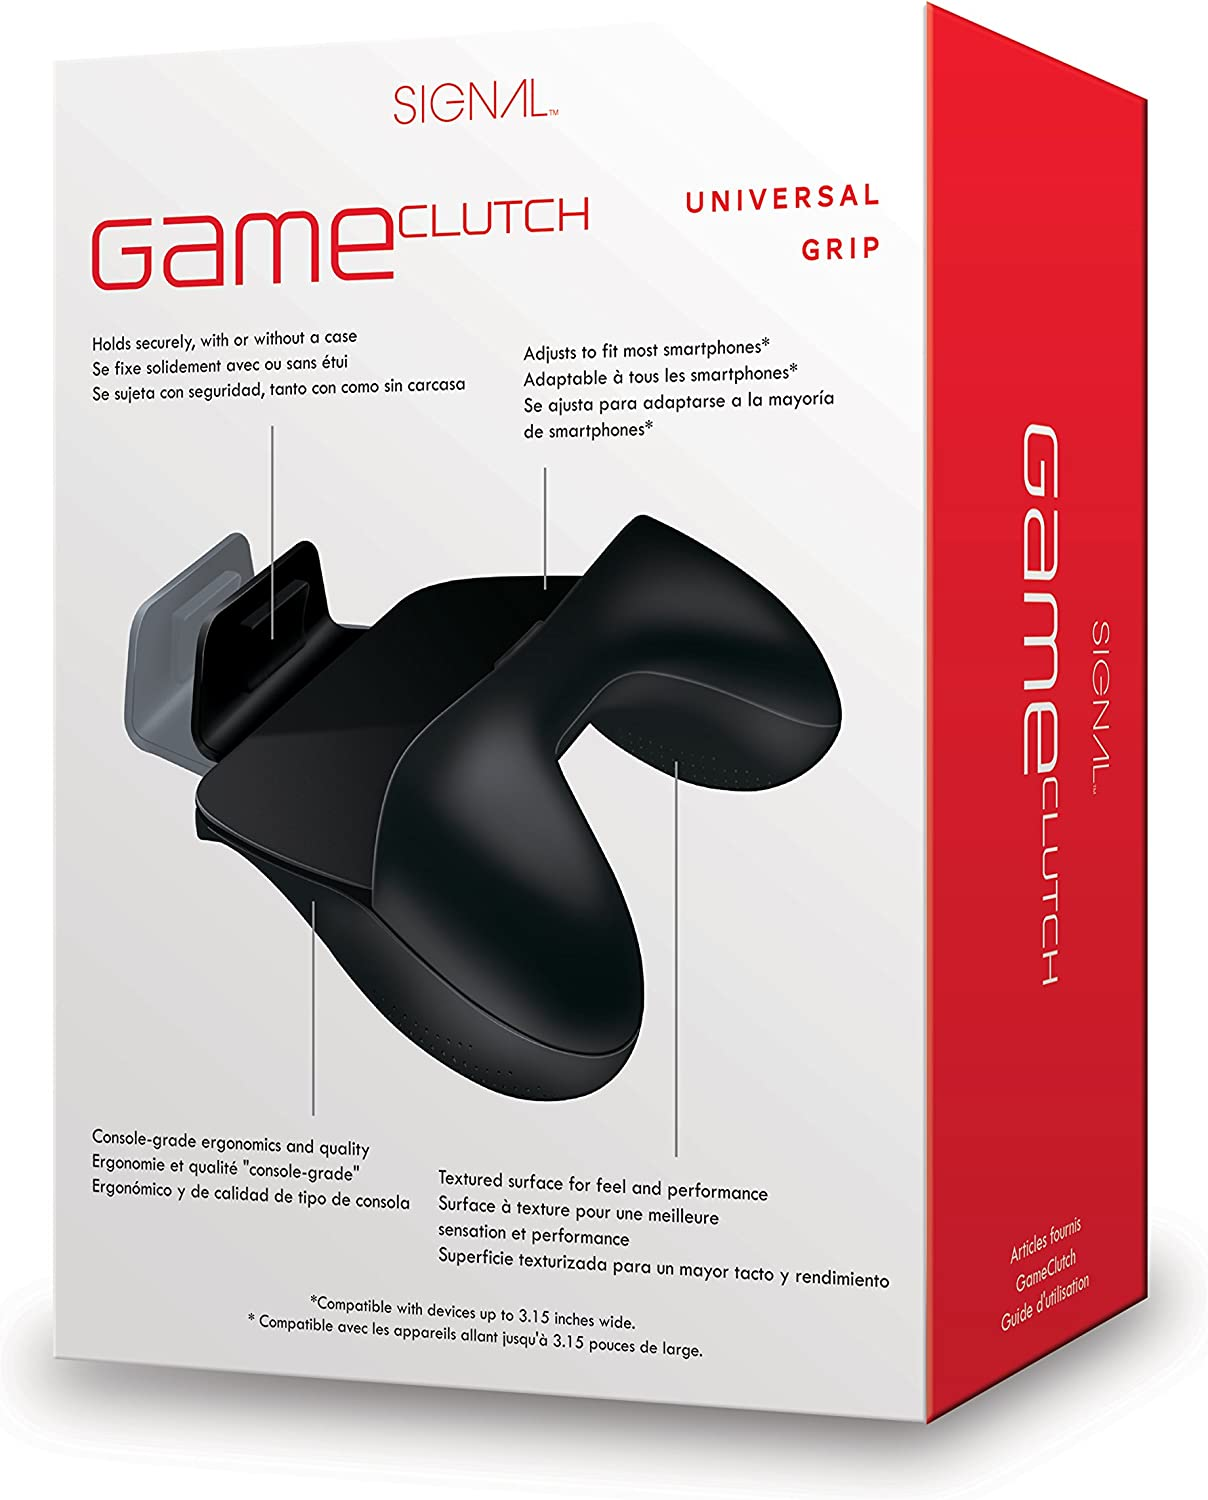 Amazon.com: Signal Game Clutch Universal Grip - Retail ...